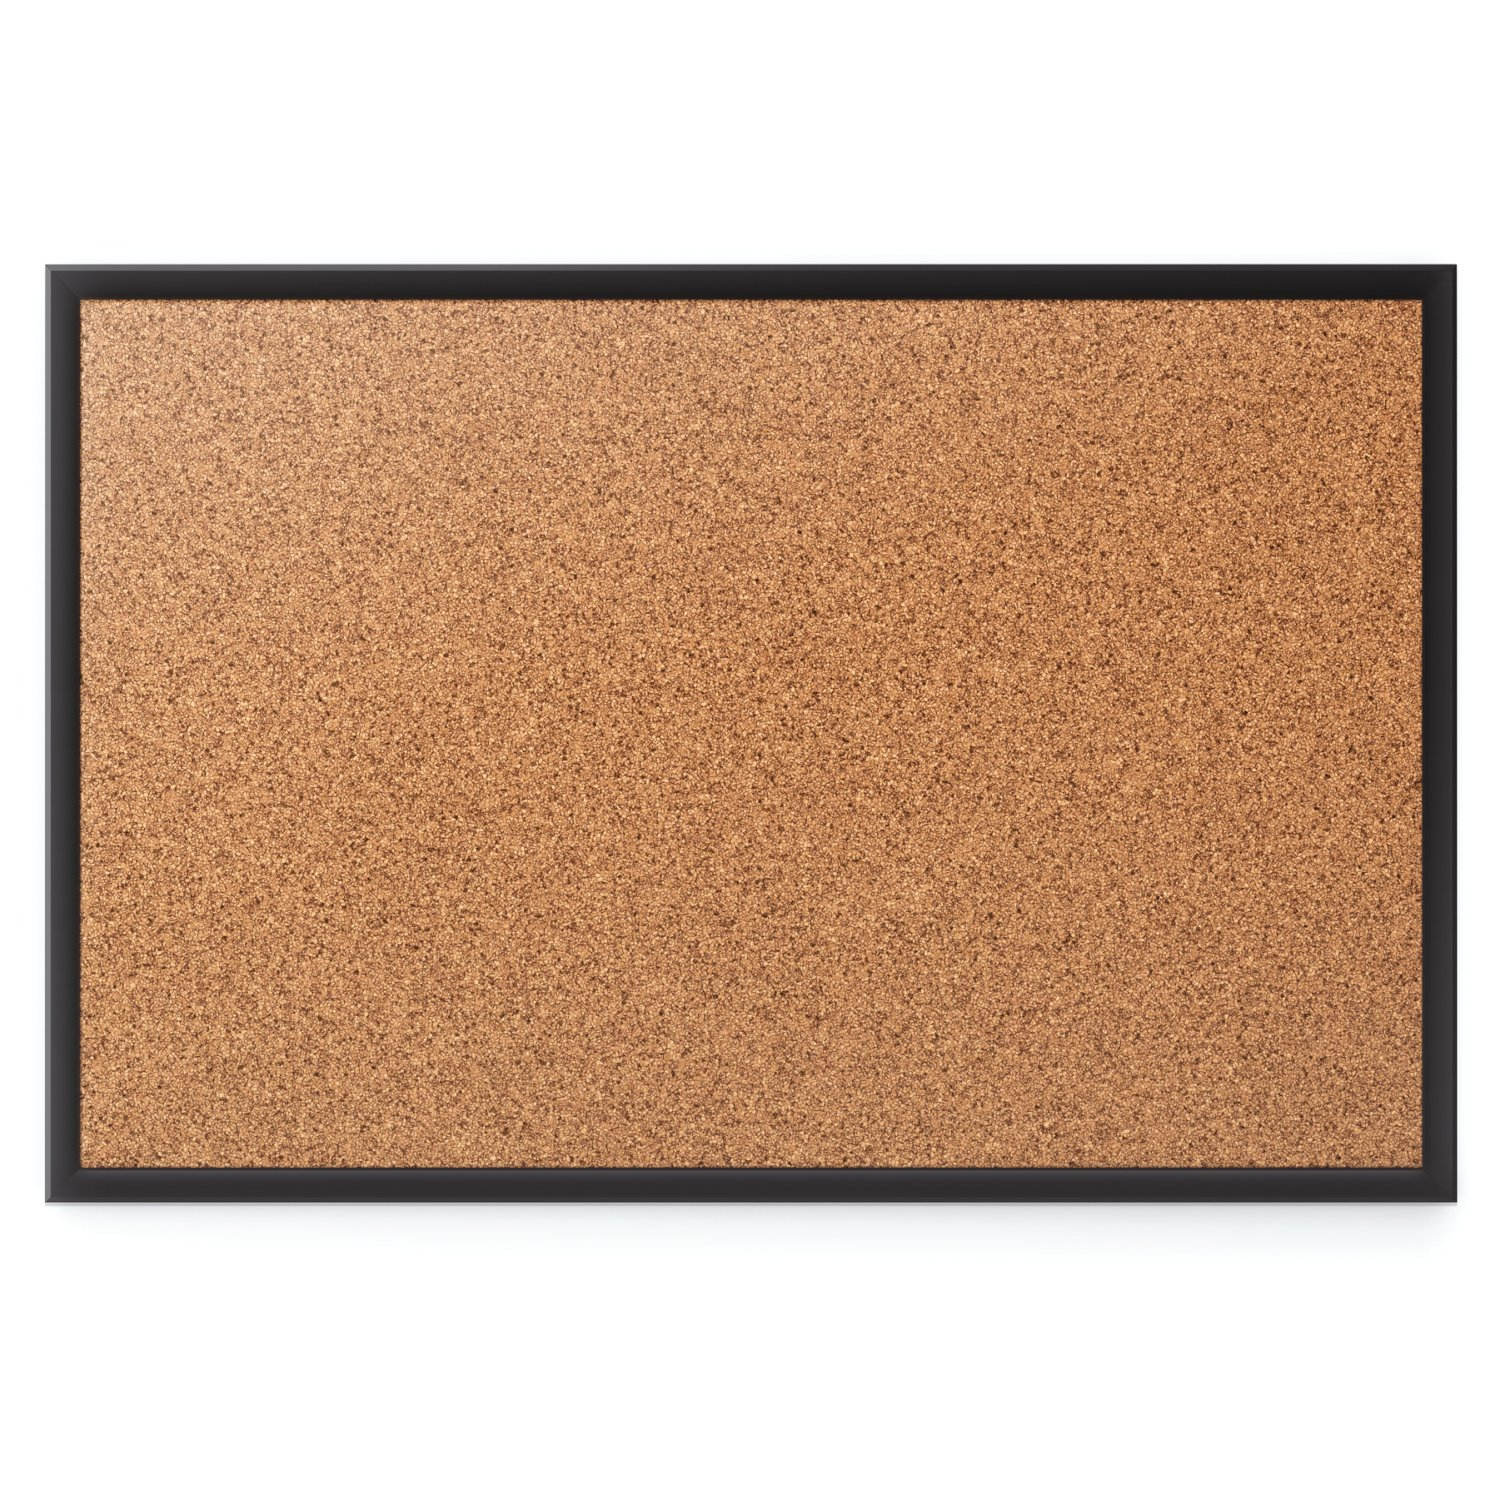 Uncategorized Cork Board No Frame amazon com quartet cork bulletin board 6 x 4 feet black frame 2307b office products